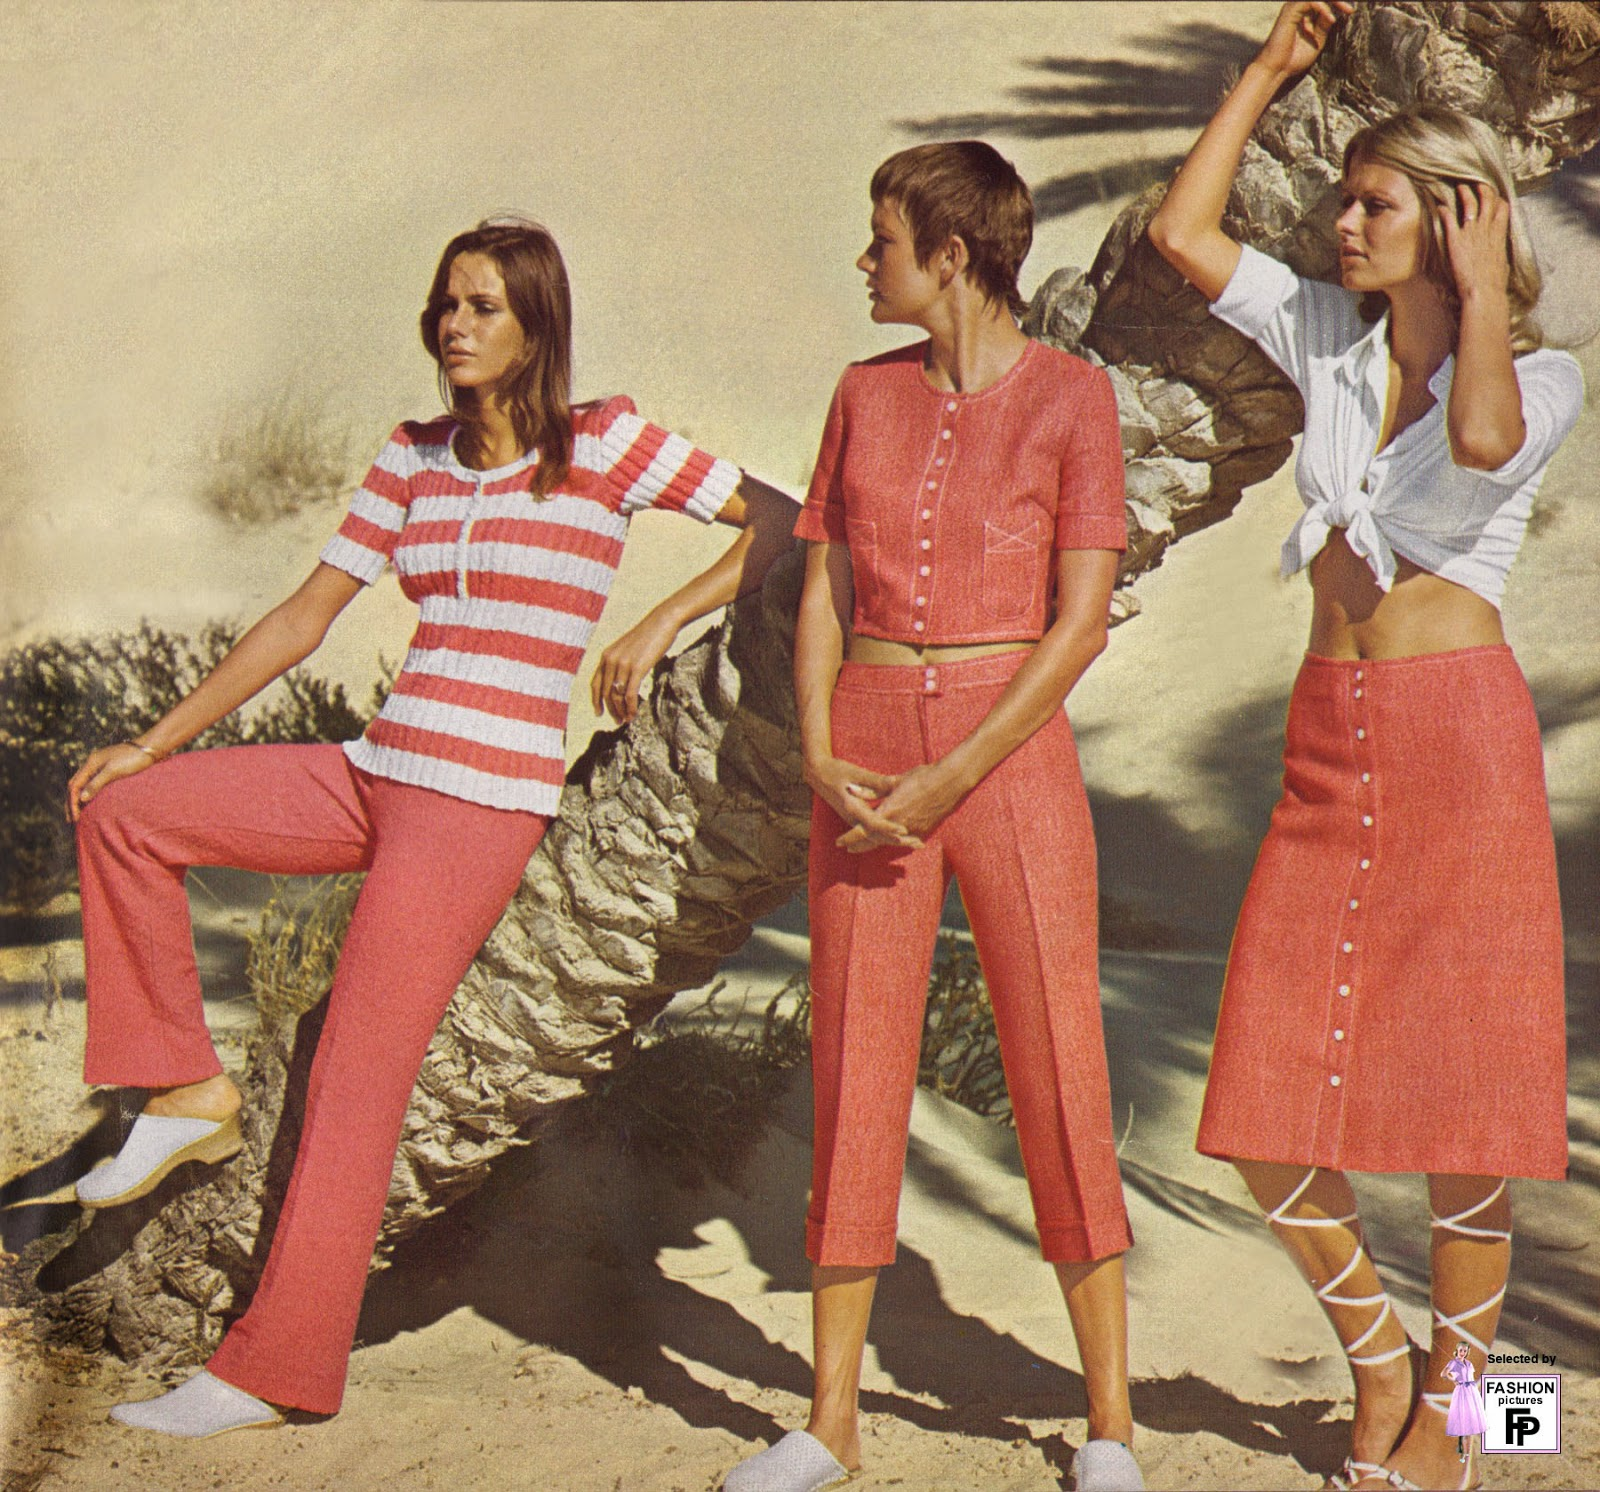 Awesome and Colorful Photoshoots of the 1970s Fashion and Style Trends